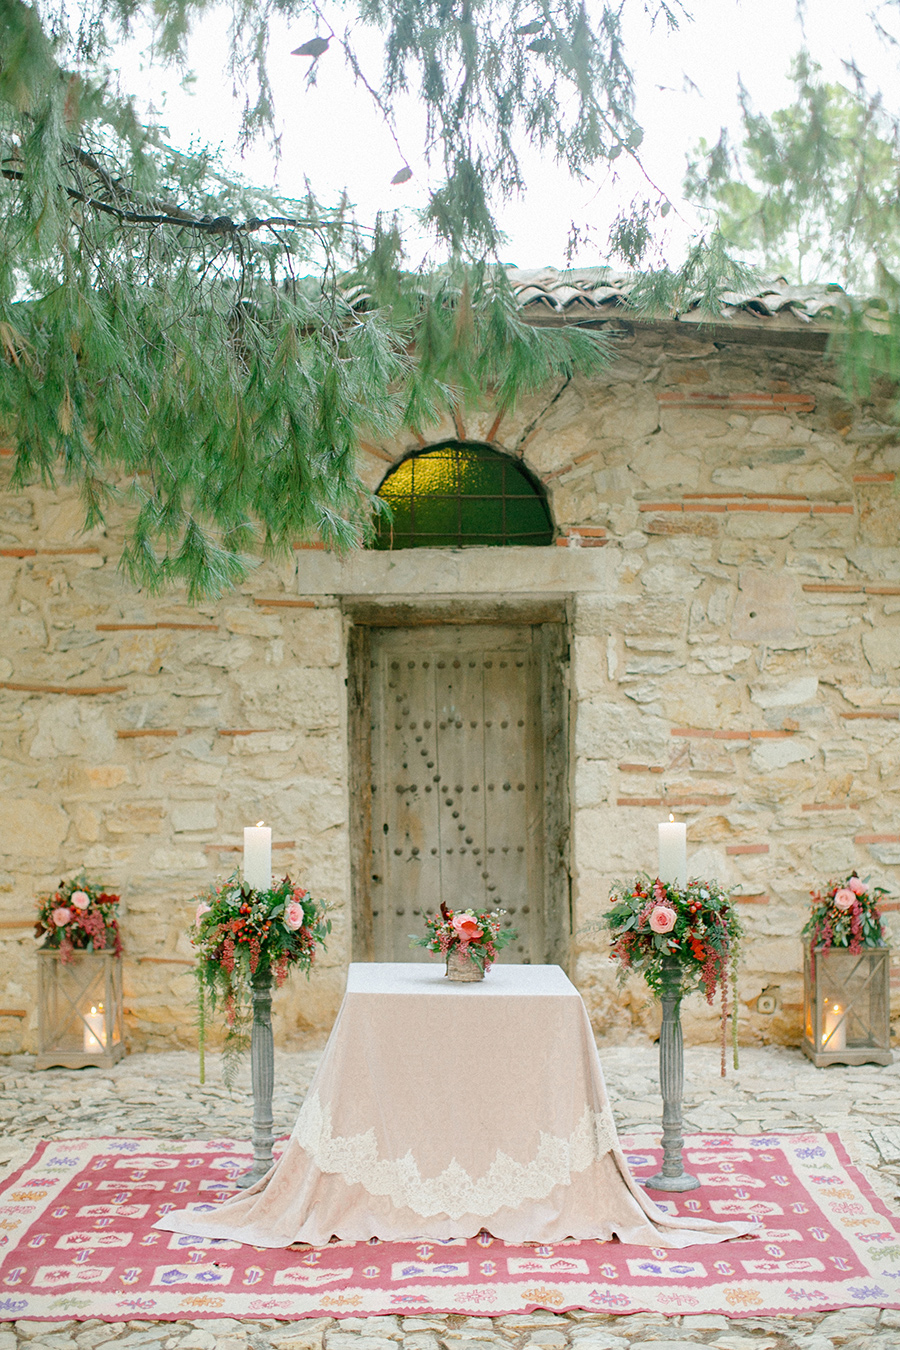 Gorgeous Boho Chic Inspired Wedding {styled shoot} in Greece - the perfect ceremony location / coordinated by Love 4 Wed / photo by Anna Roussos Photography